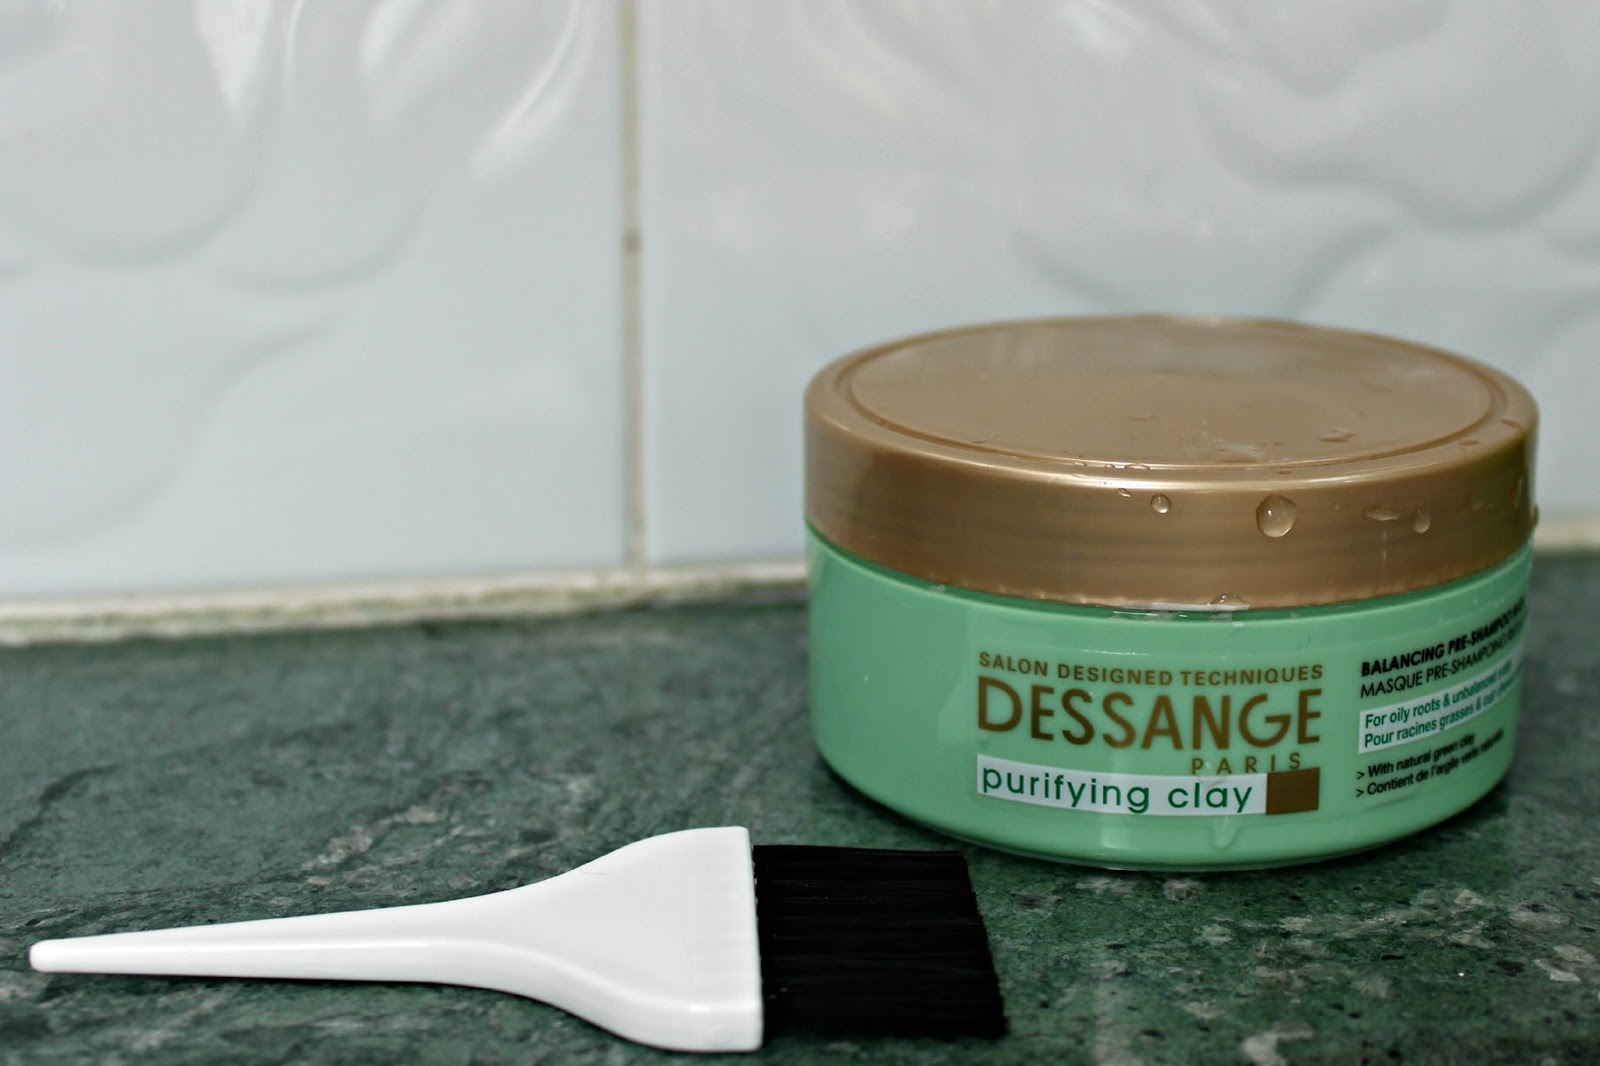 dessange paris clay mask